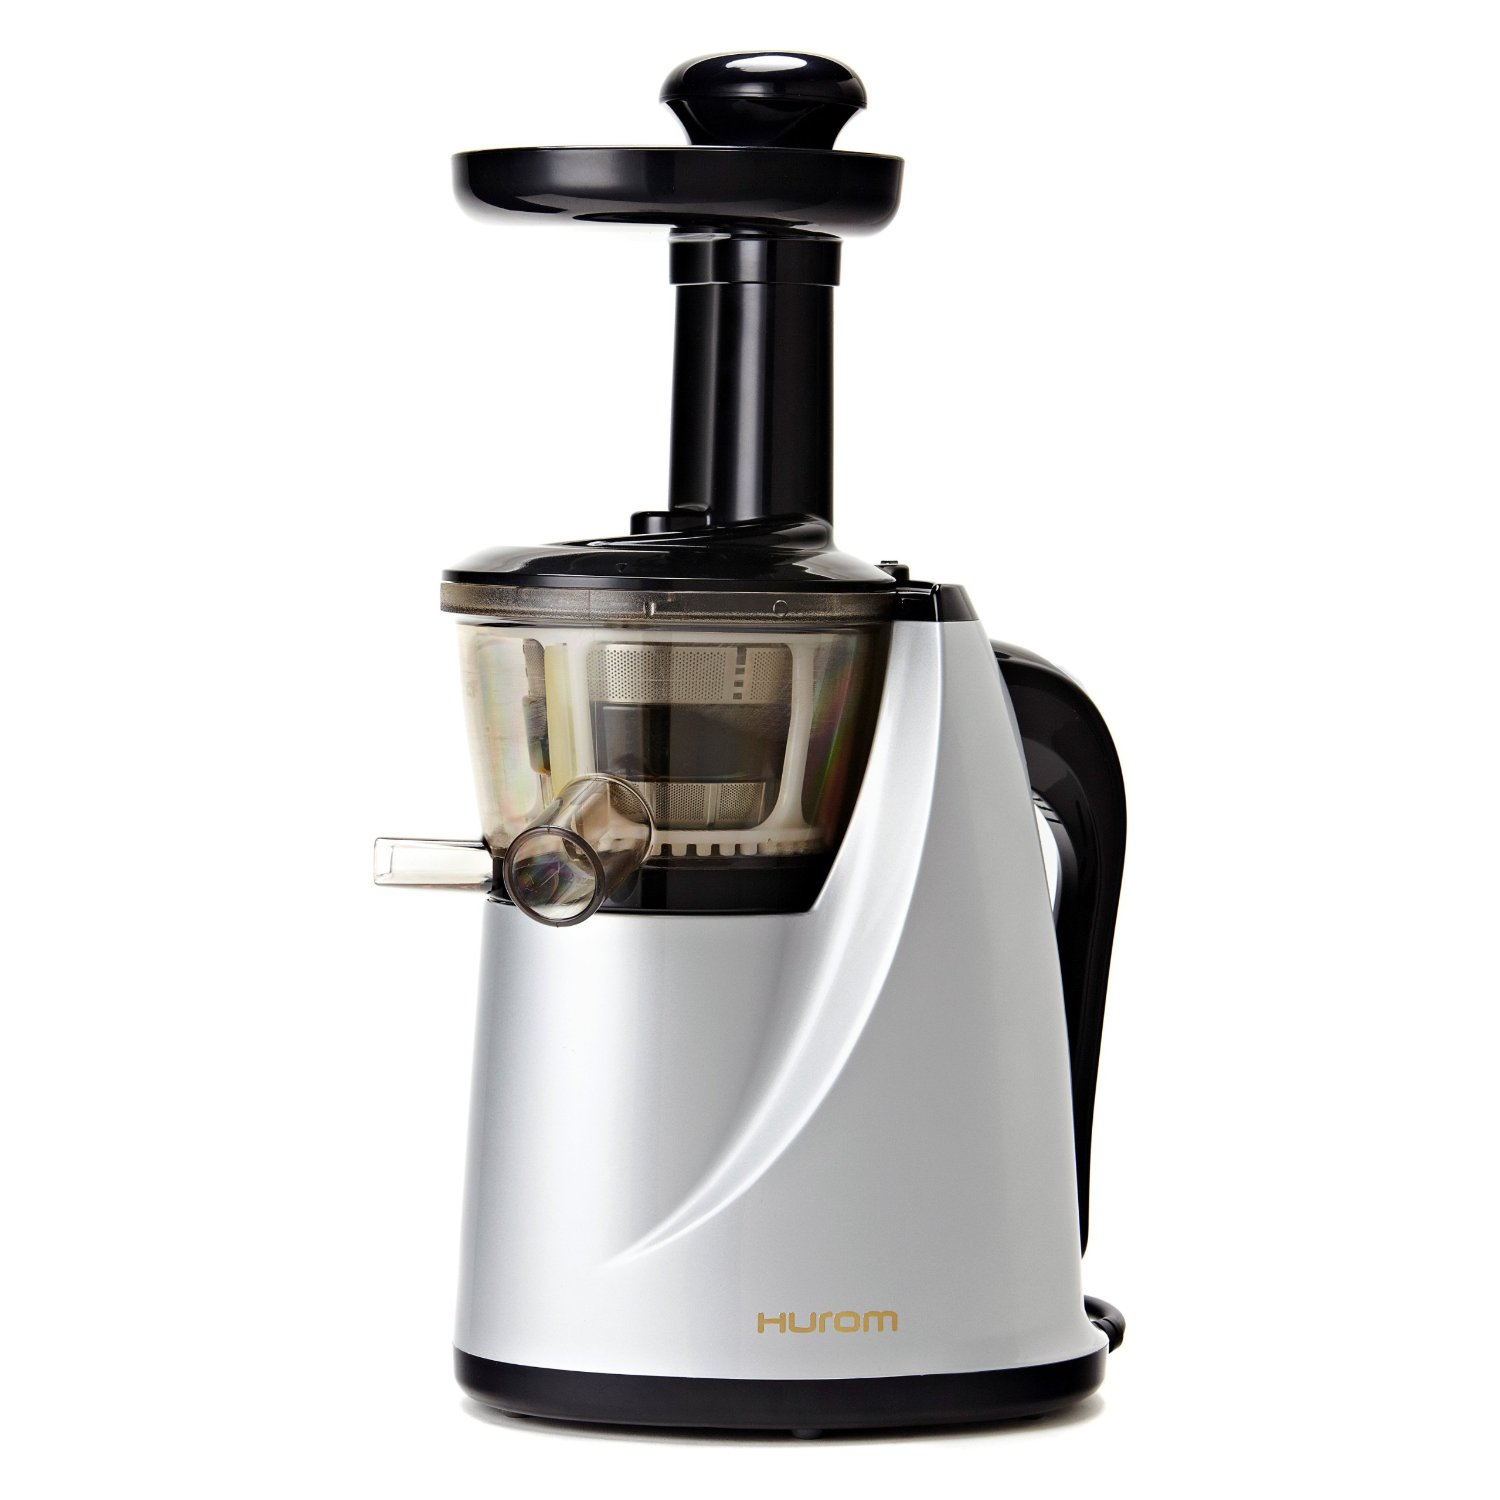 Hurom Jp Series Slow Juicer : Hurom Juicer Reviews Hurom Cold Press Juicers Comparison - Best Cold Press Juicers